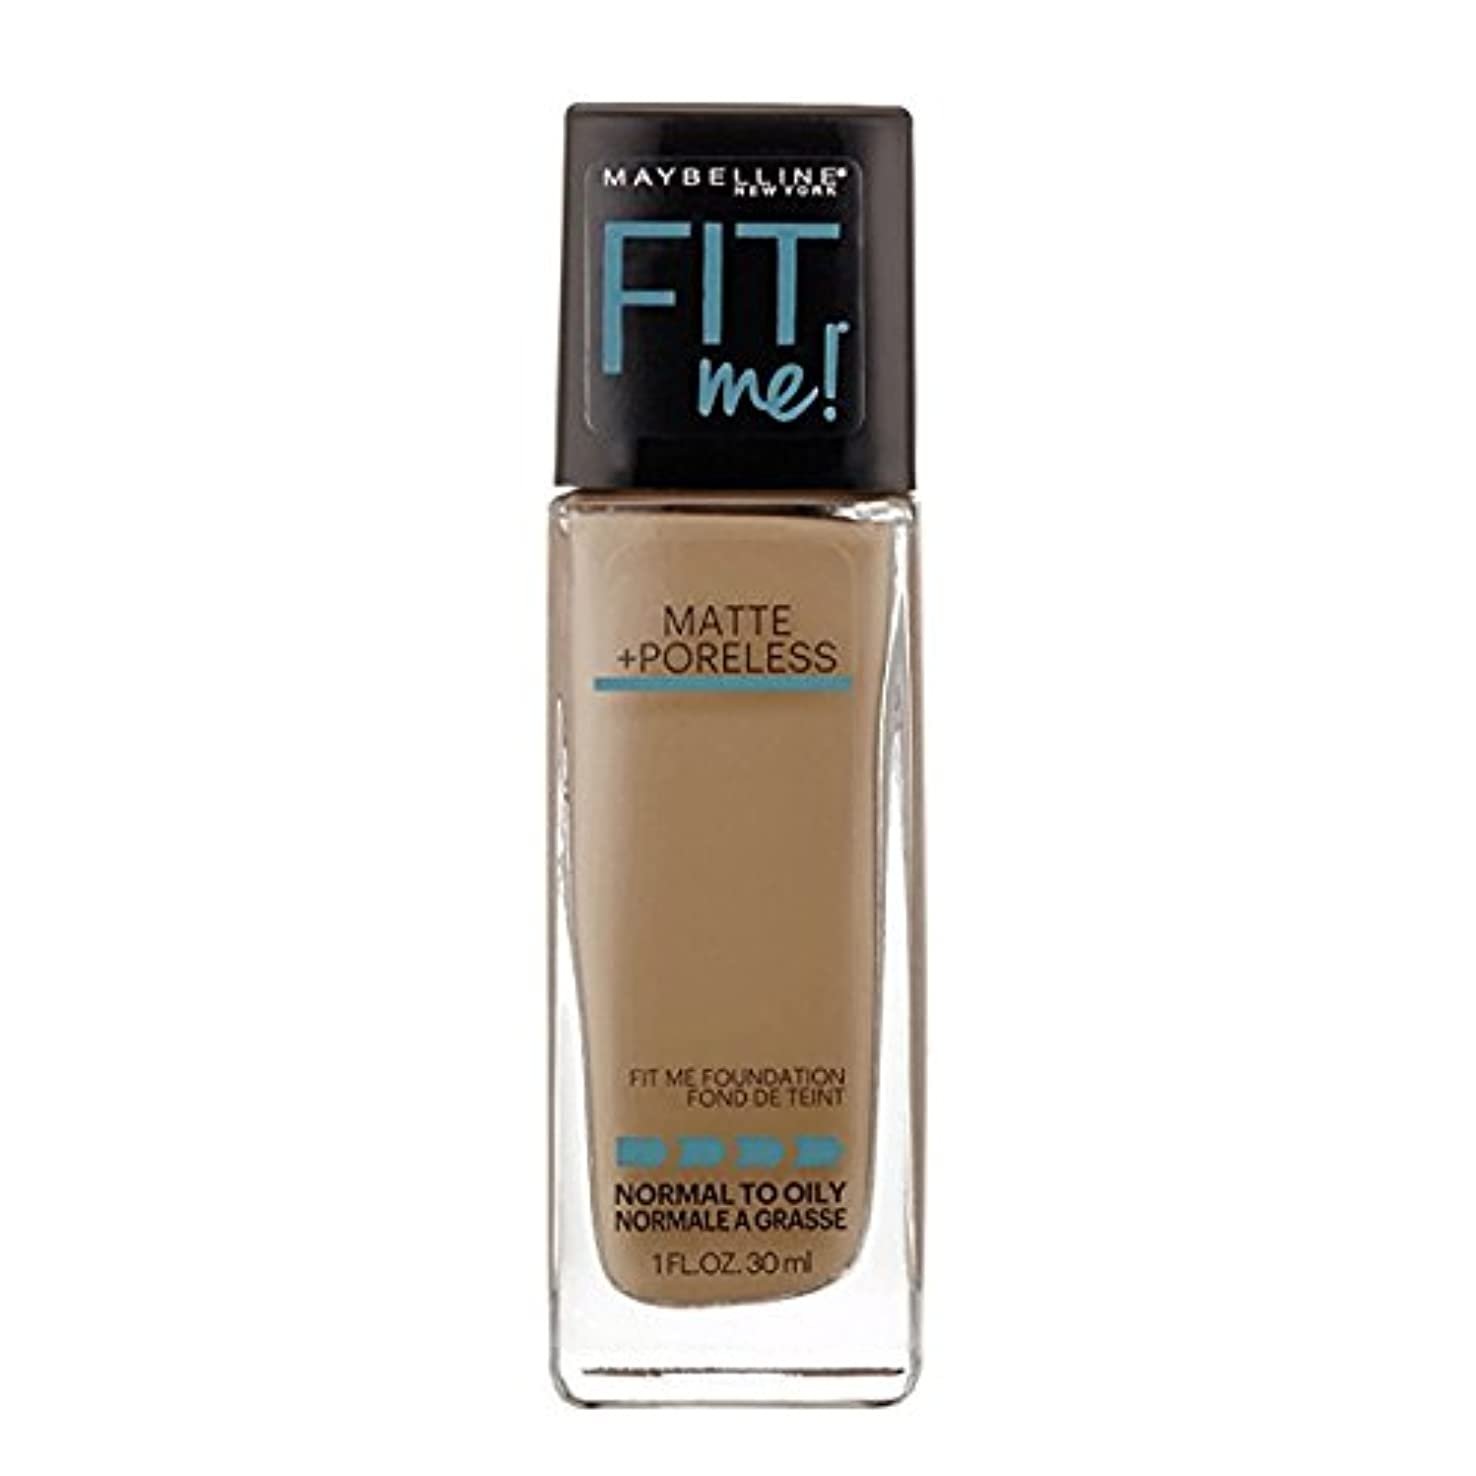 クレーター日光彫る(6 Pack) MAYBELLINE Fit Me! Matte + Poreless Foundation - Warm Nude 128 (並行輸入品)